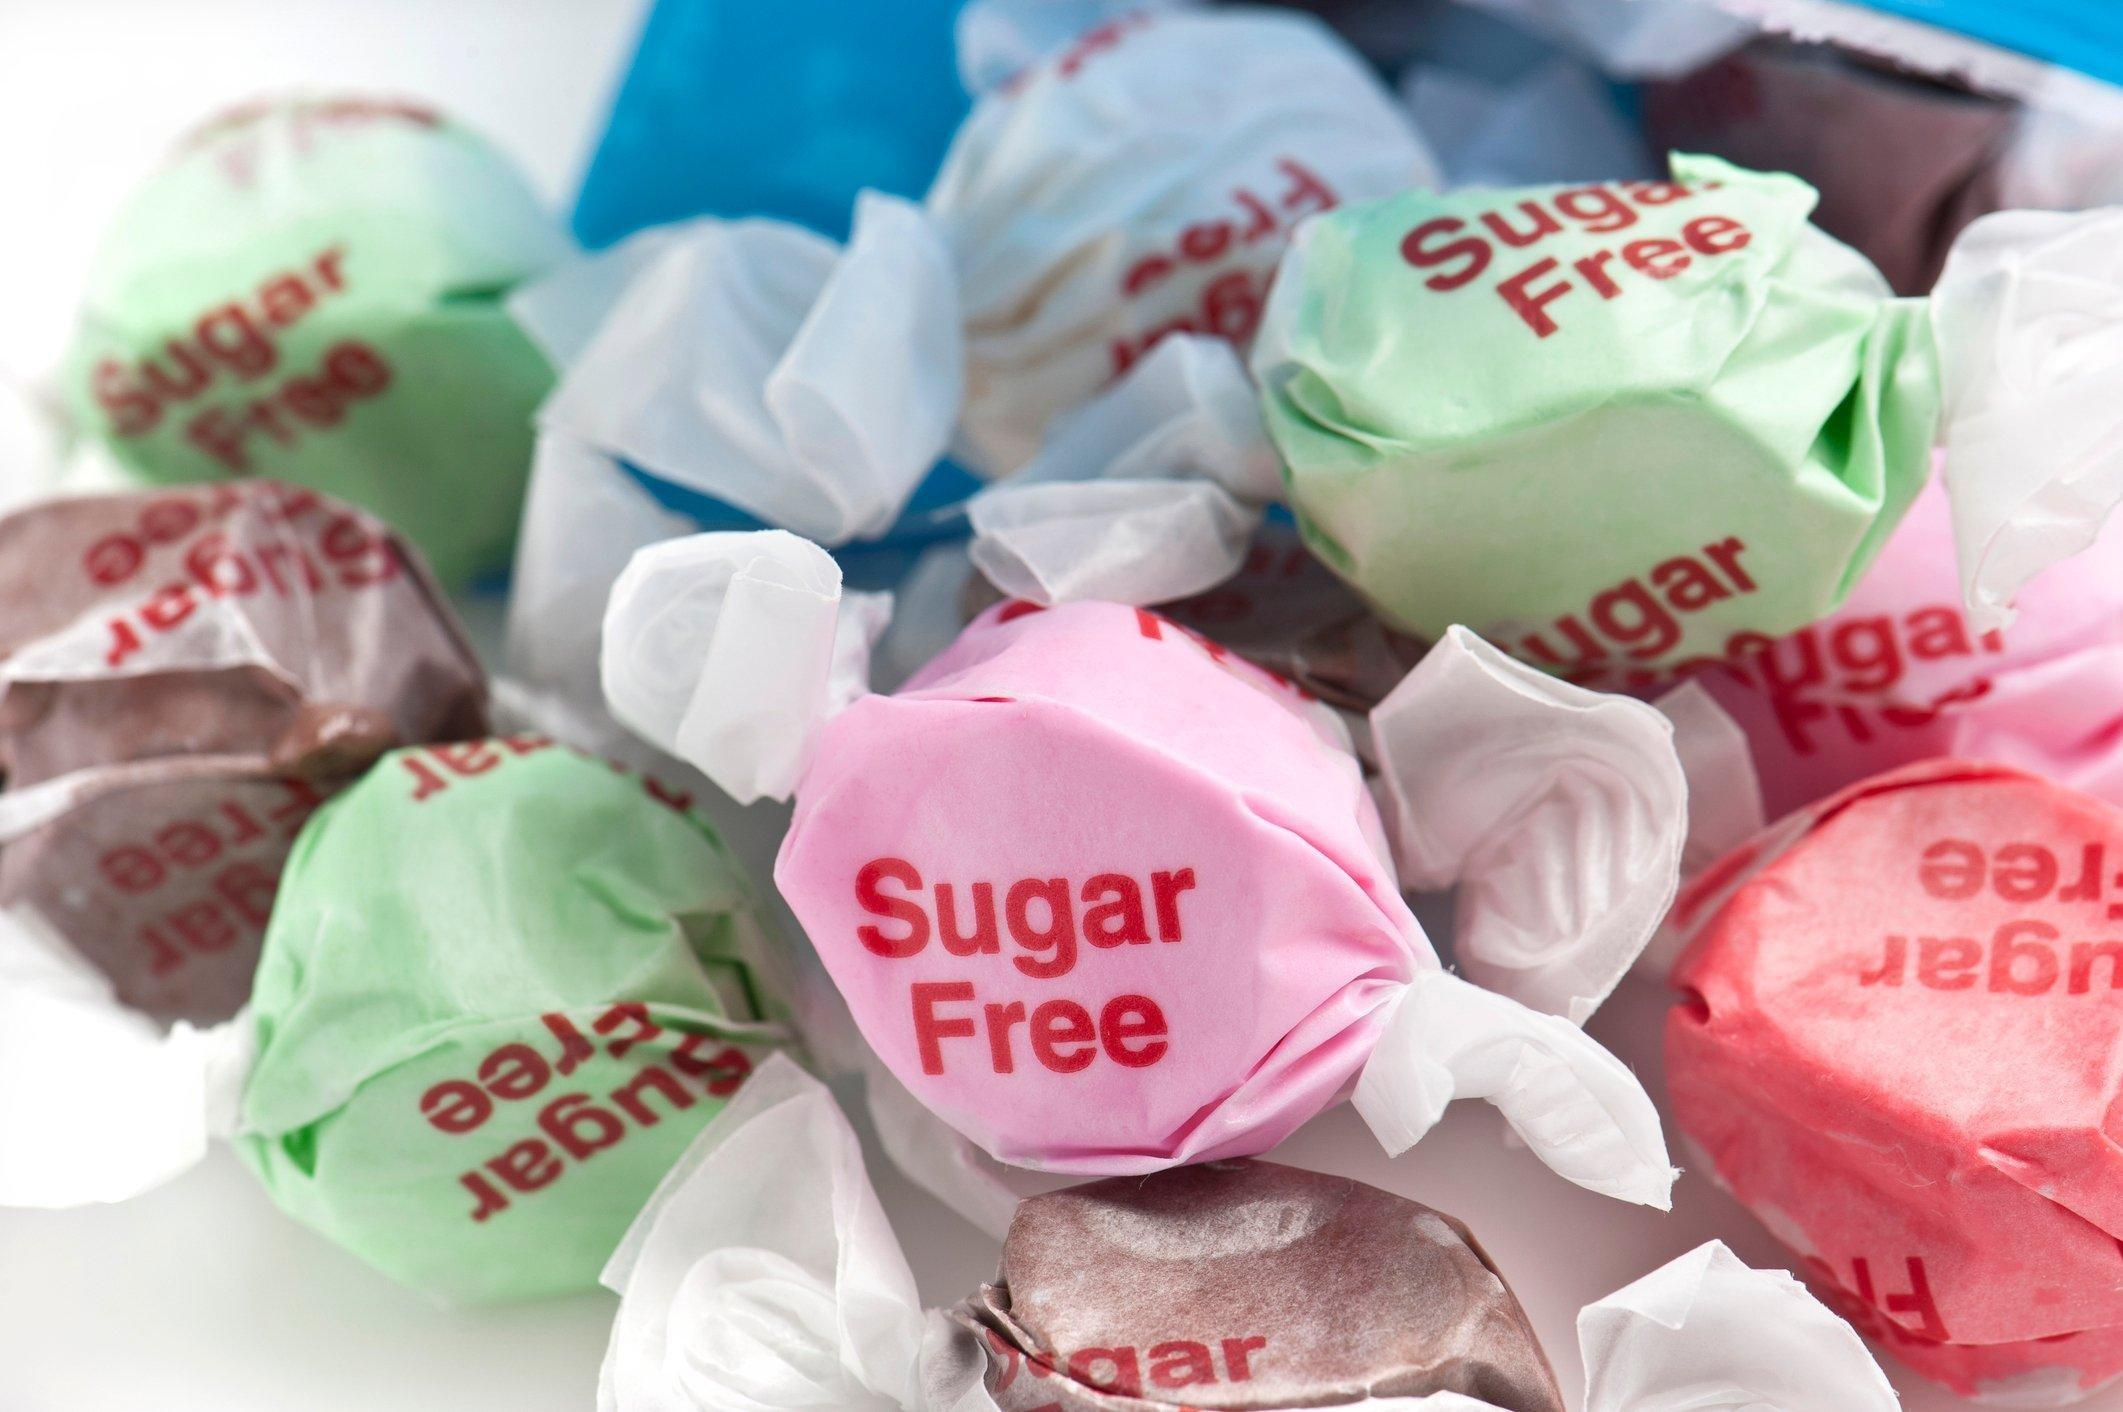 Is Sugar-Free Candy the Best Choice If You Have Diabetes?